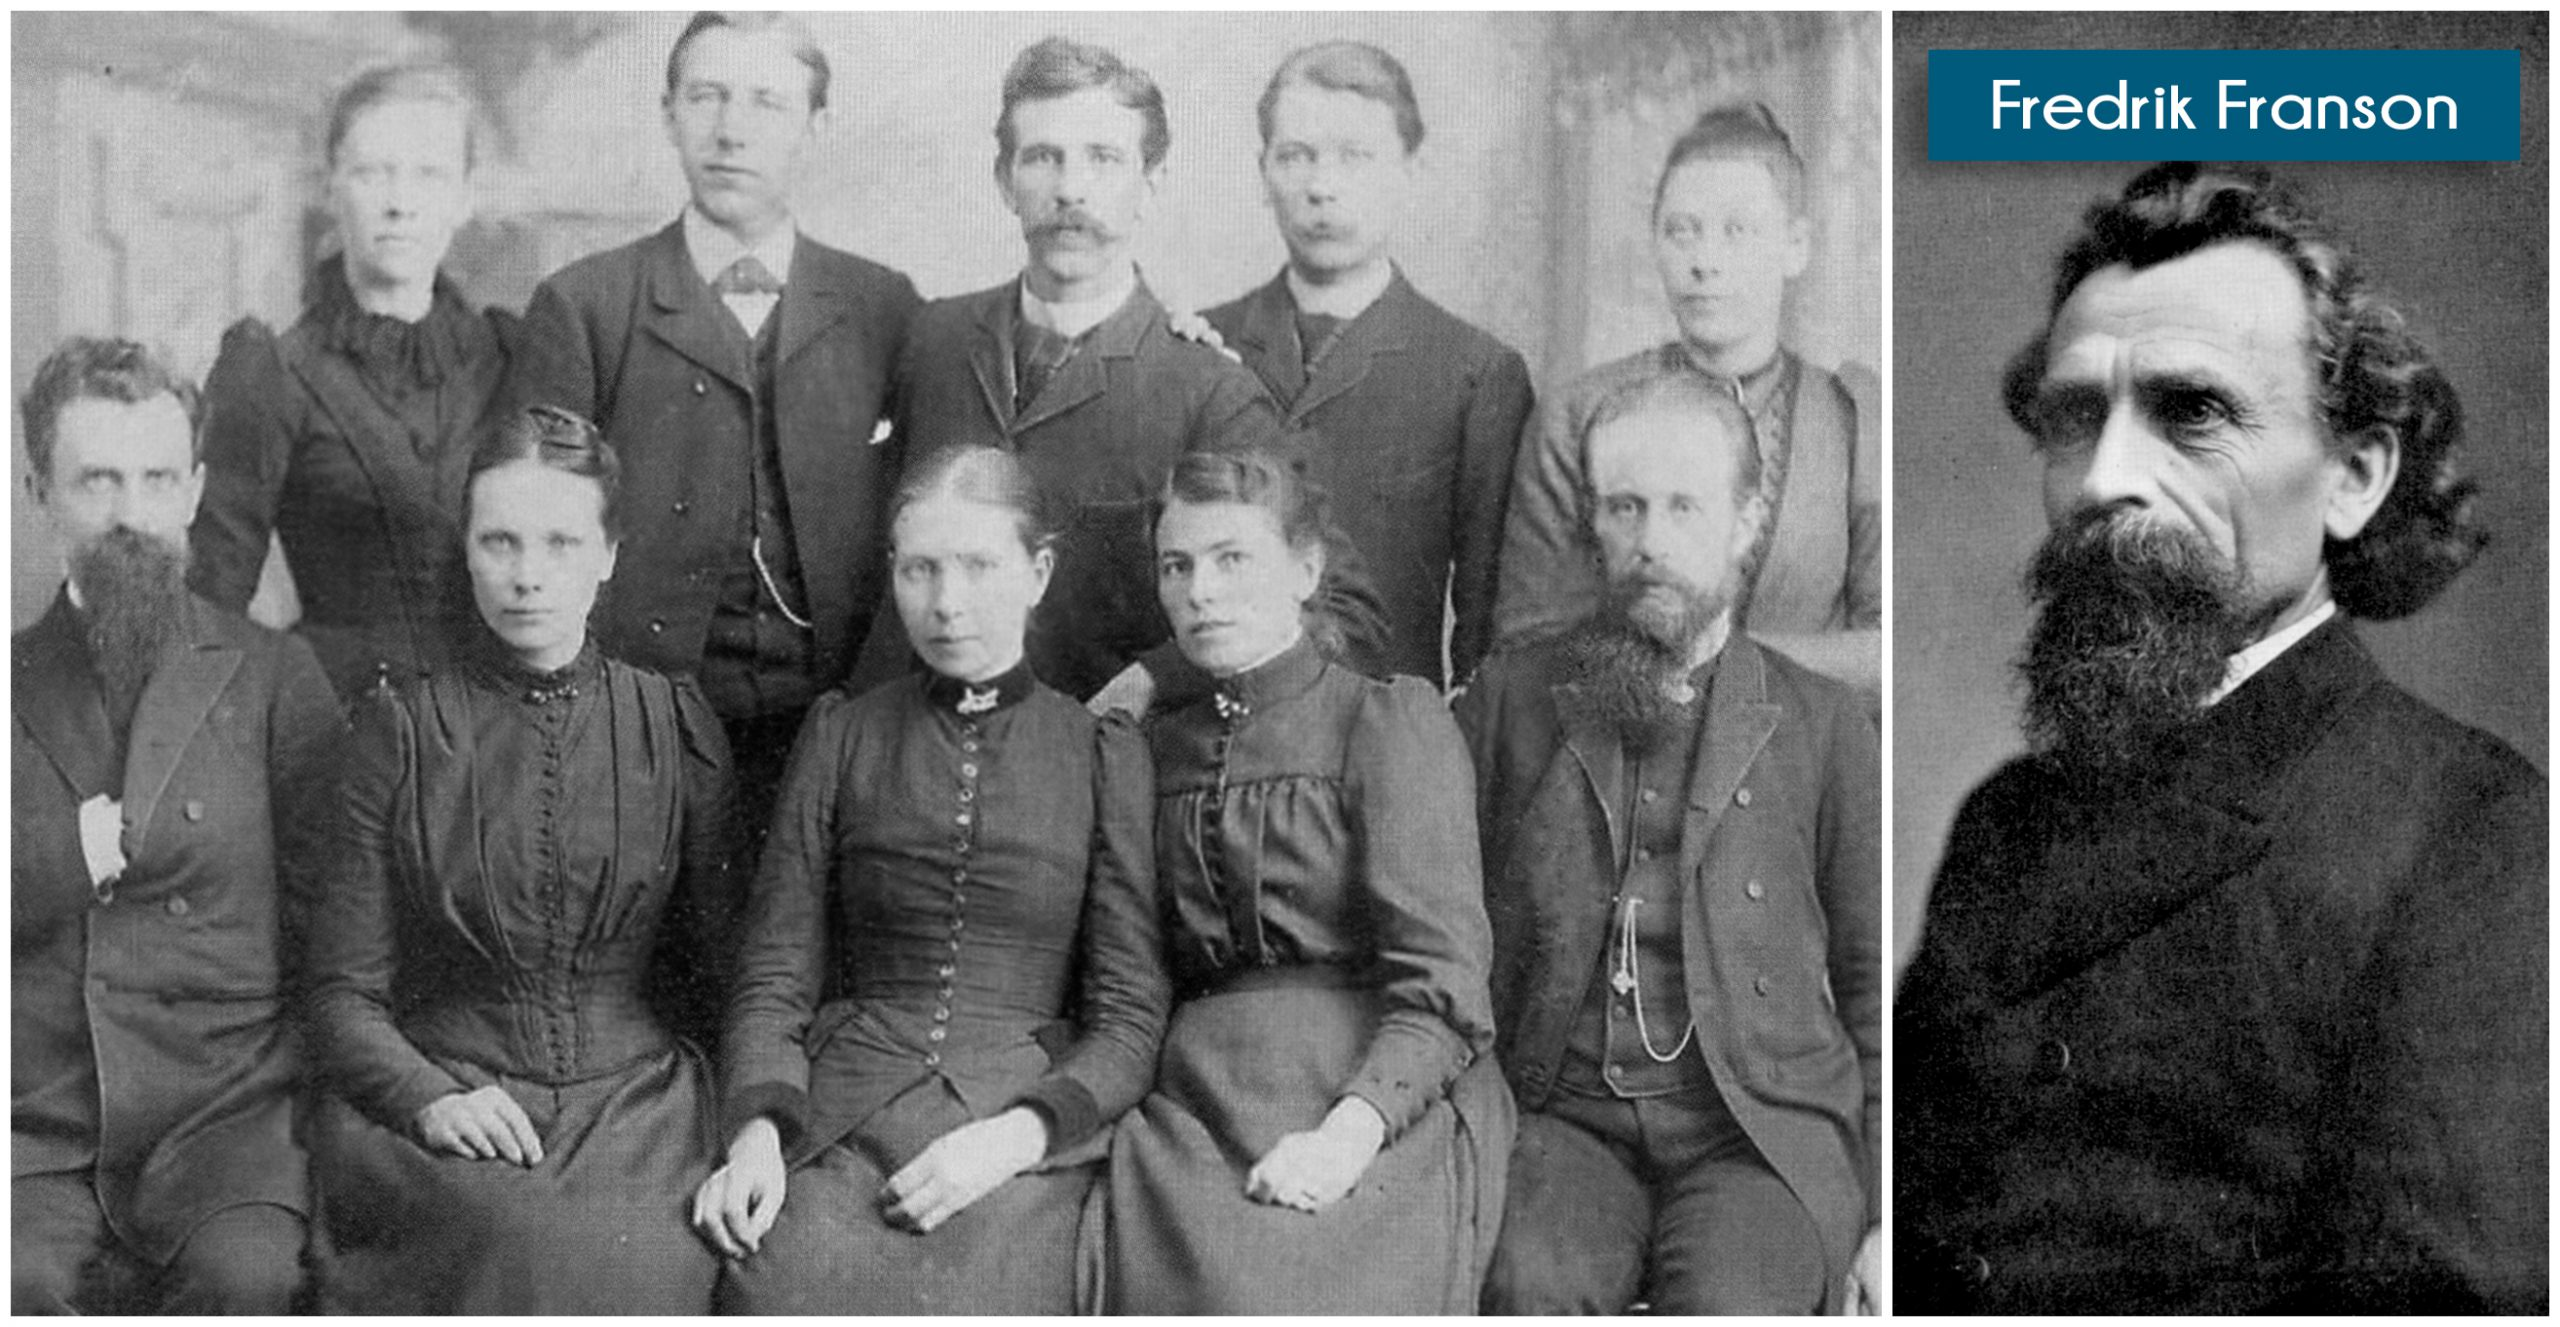 (Left) Fredrik Franson and early missionaries to South Africa. (Right) Fredrik Franson portrait.